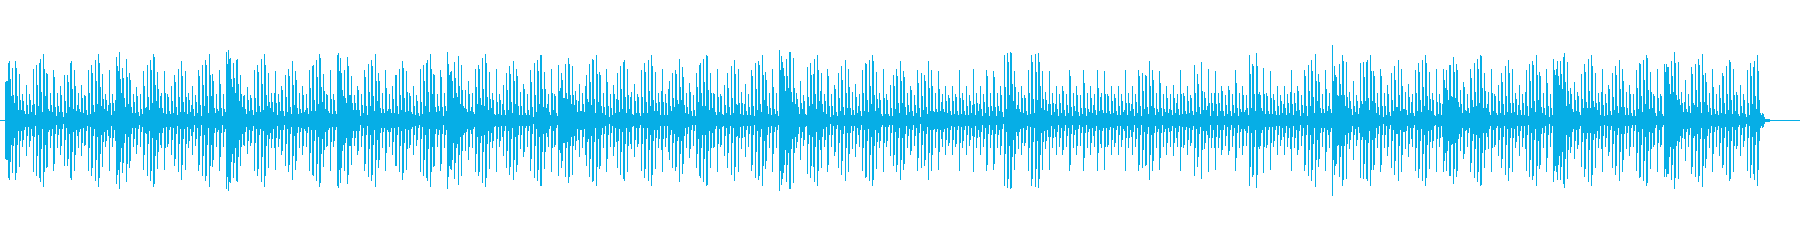 Healing music techno's reproduced waveform